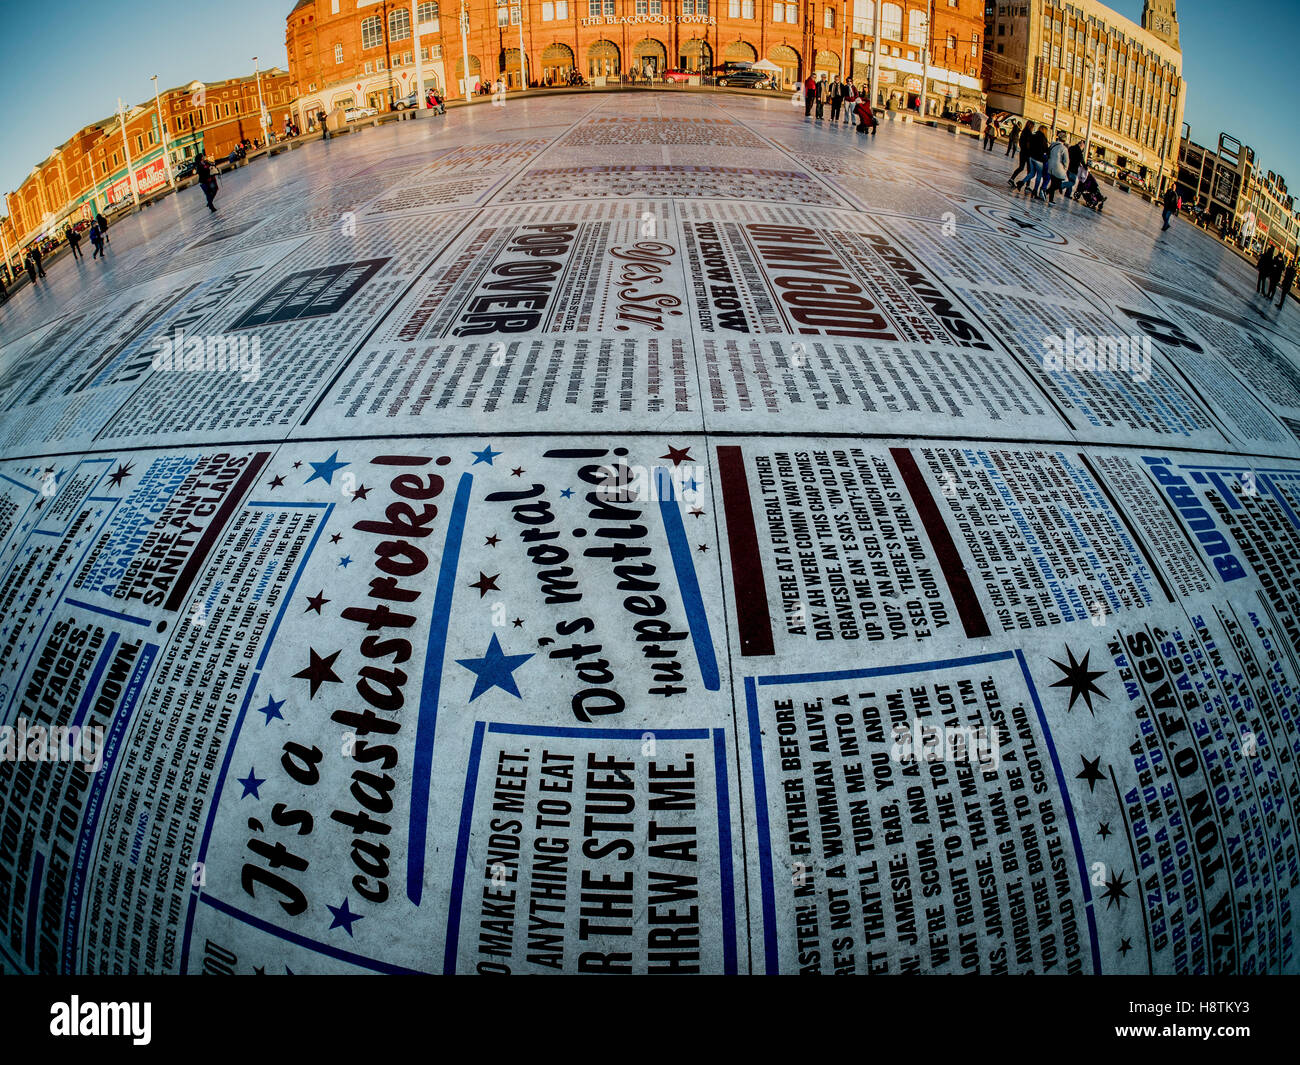 Comedy Carpet in front of Blackpool Tower, created by artist Gordon Young, and designed in collaboration with Why - Stock Image